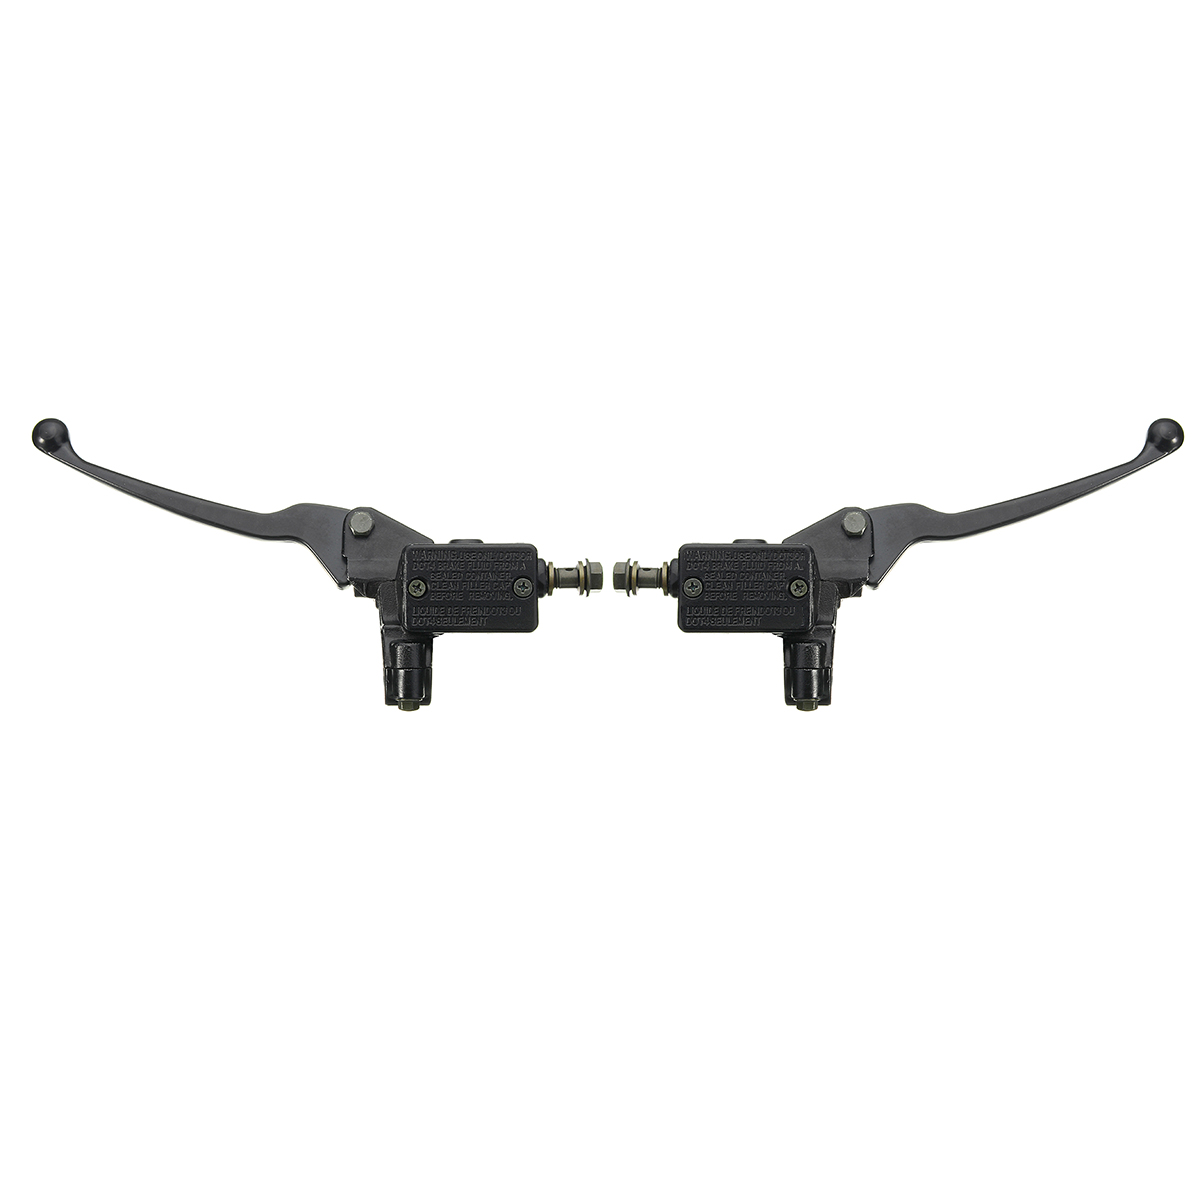 8mm Banjo Motorcycle Handlebar Hydraulic Brake Clutch Master Cylinder Lever Universal